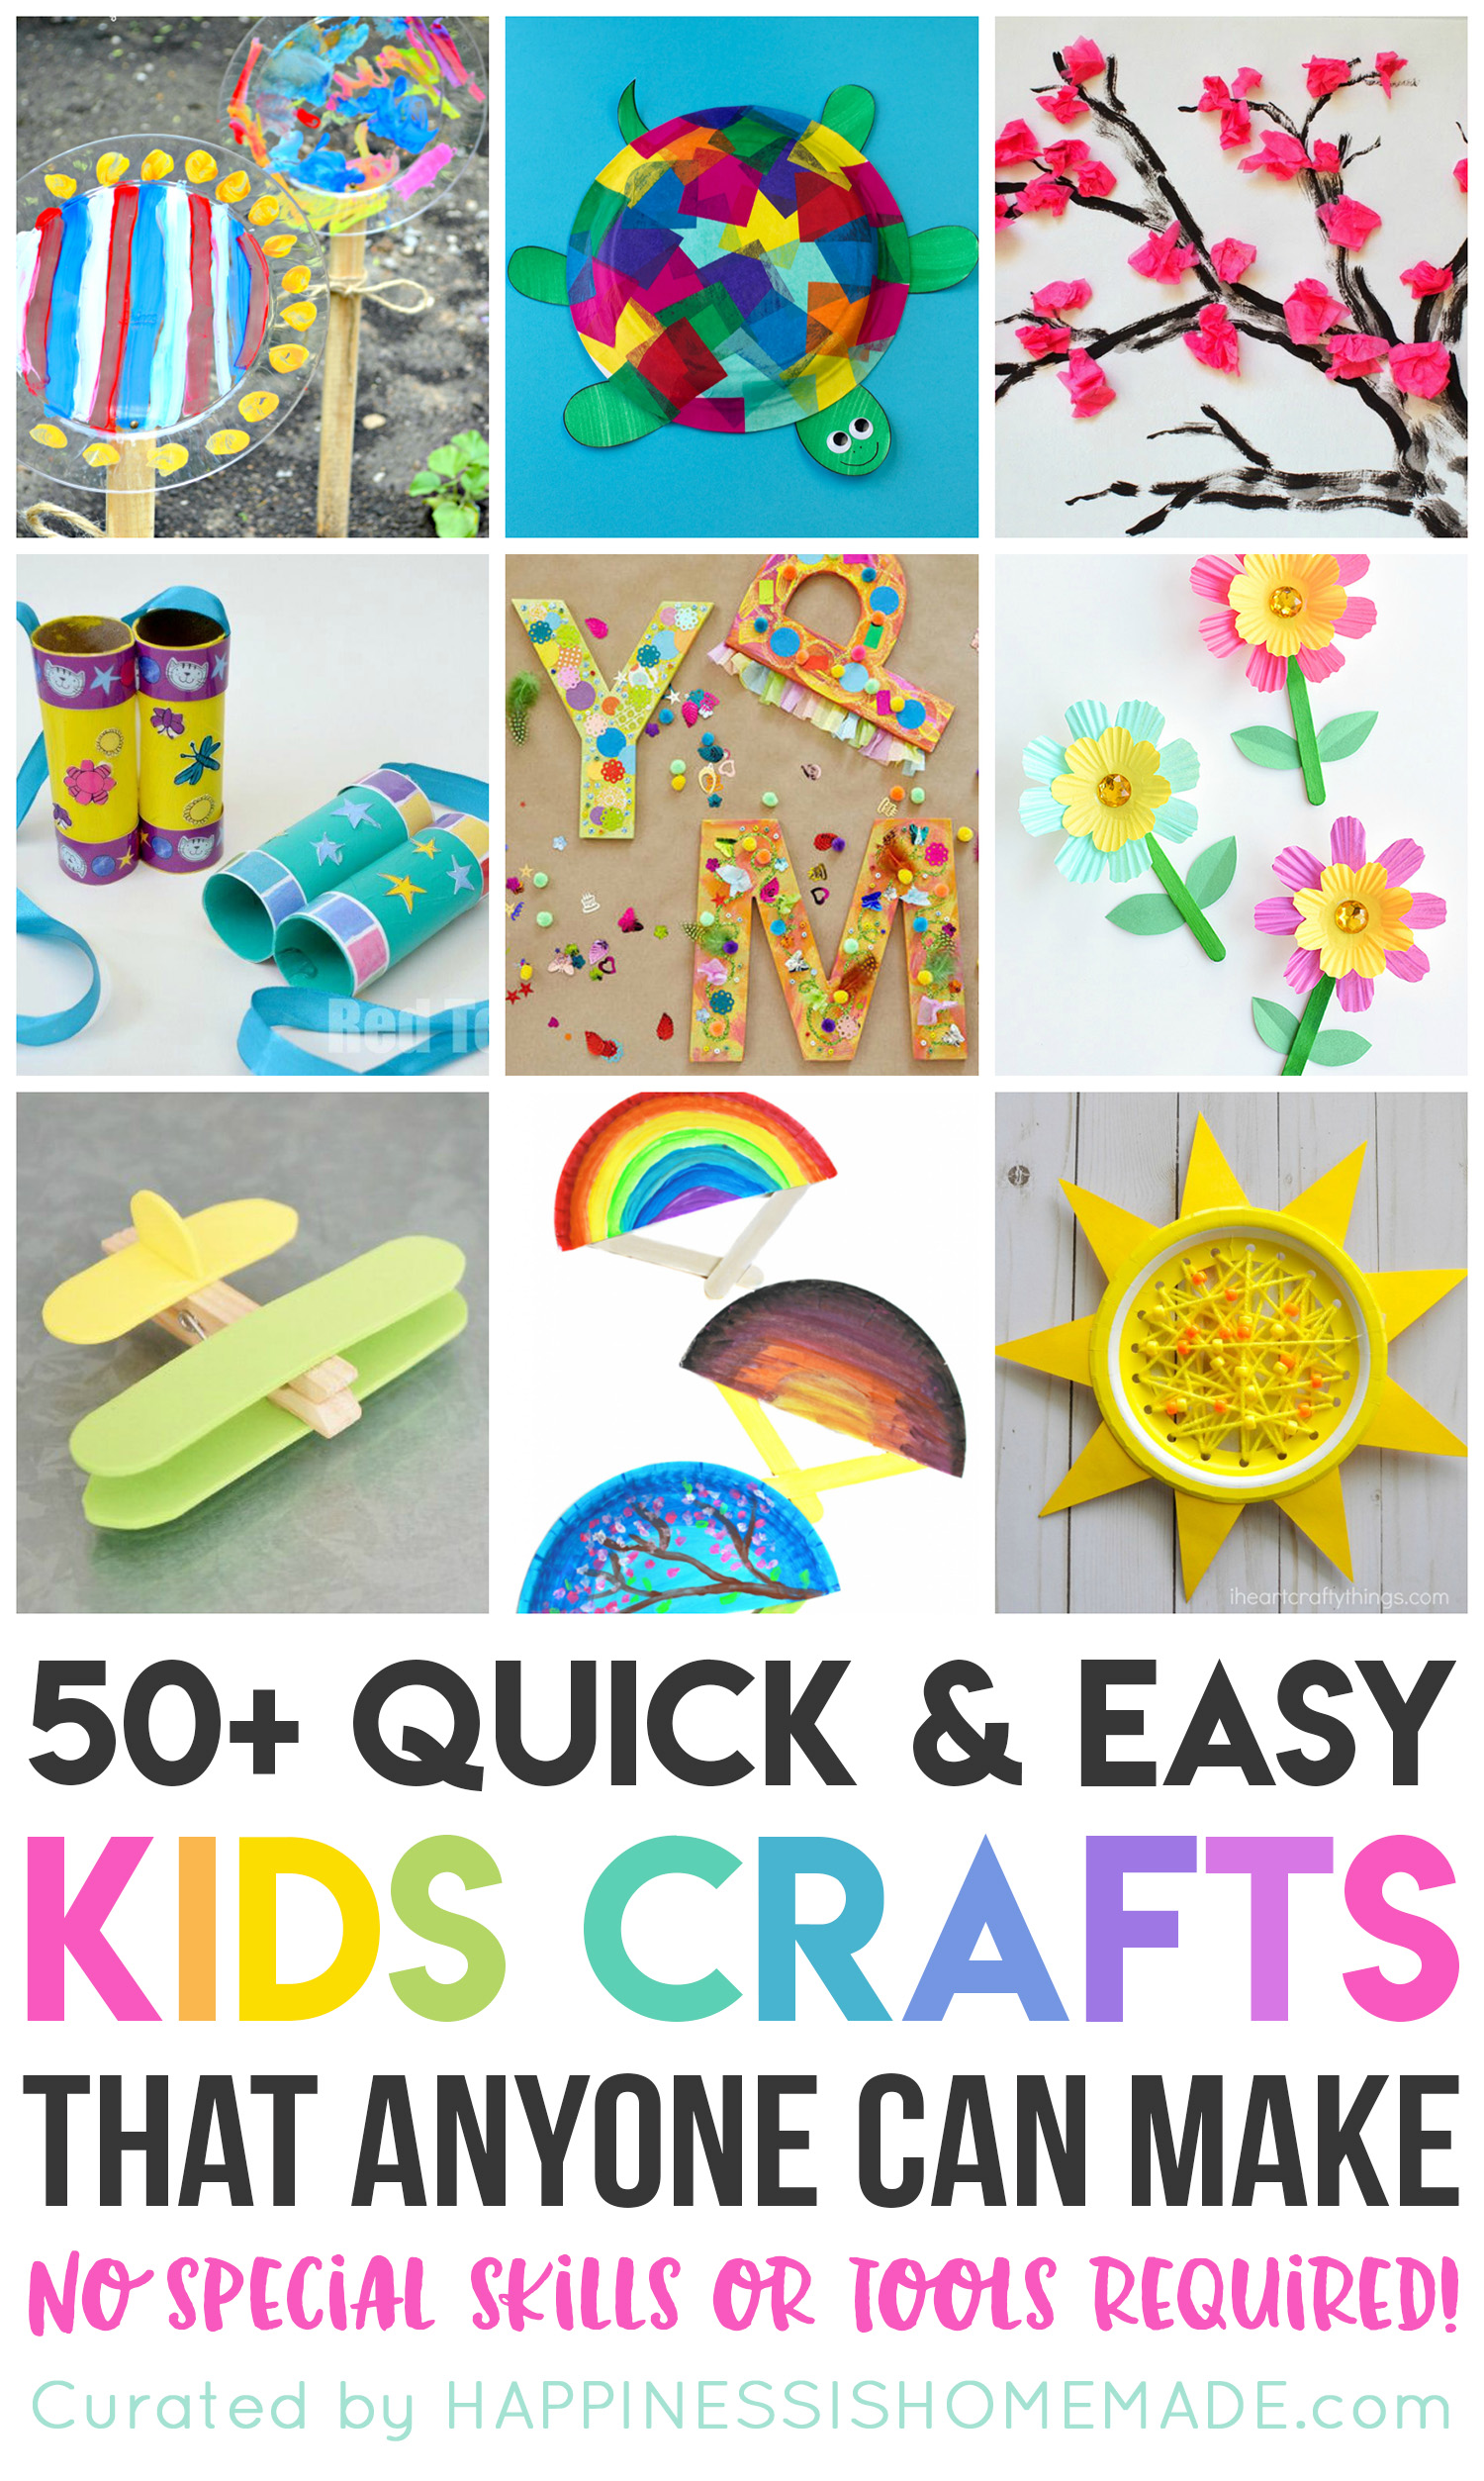 50+ quick & easy kids crafts that anyone can make! - happiness is